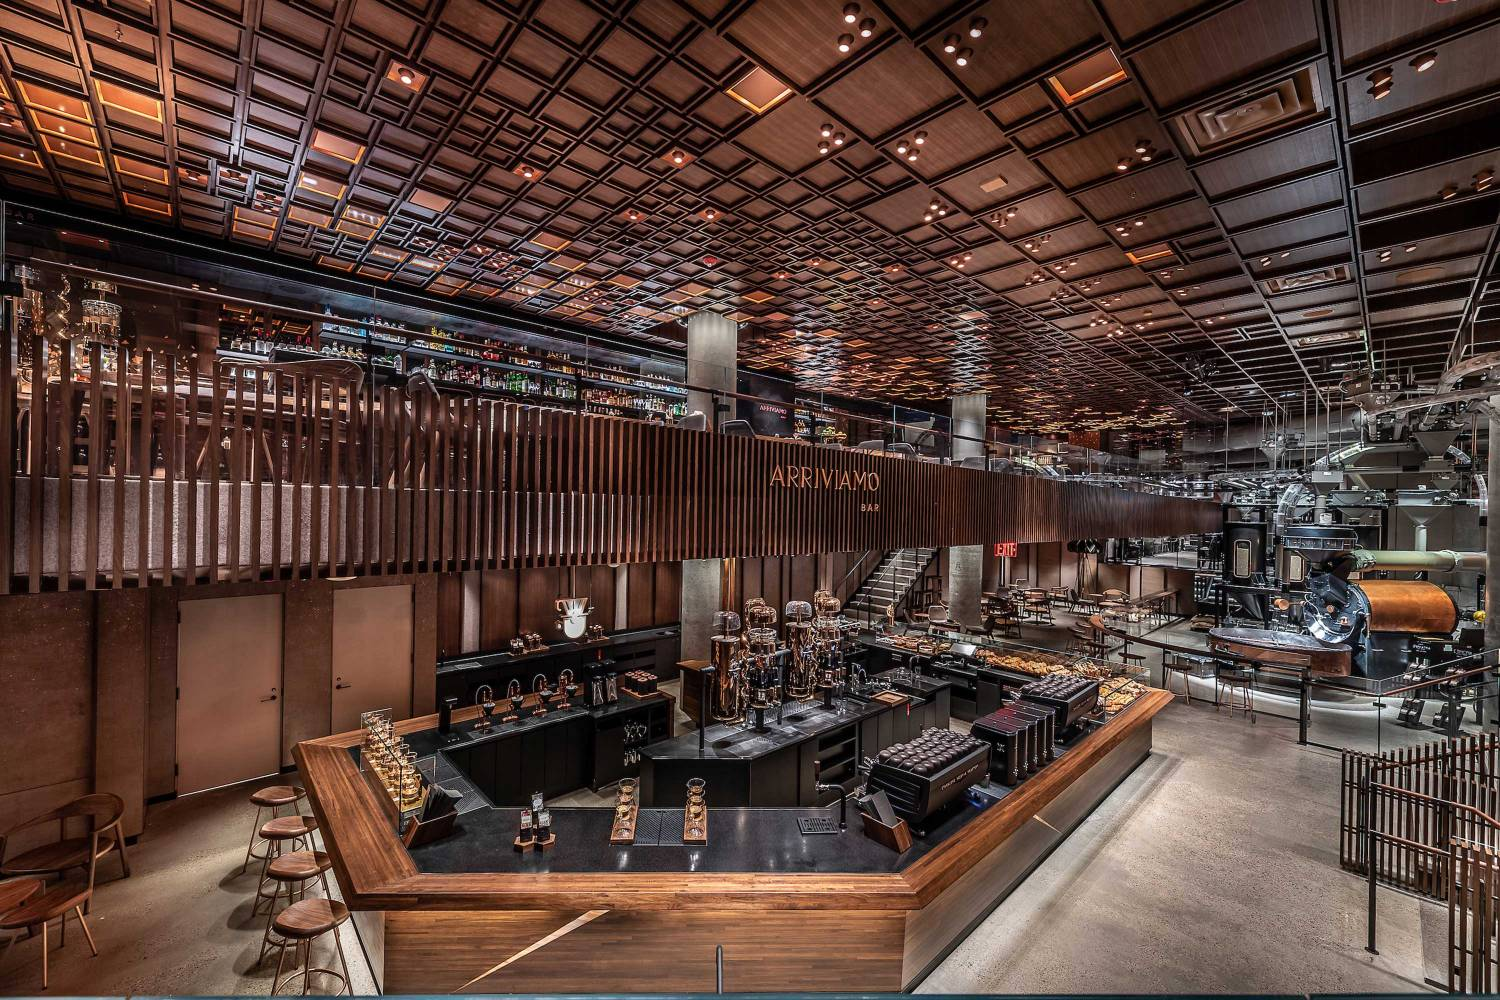 Starbucks Reserve Roastery Dining Meatpacking District